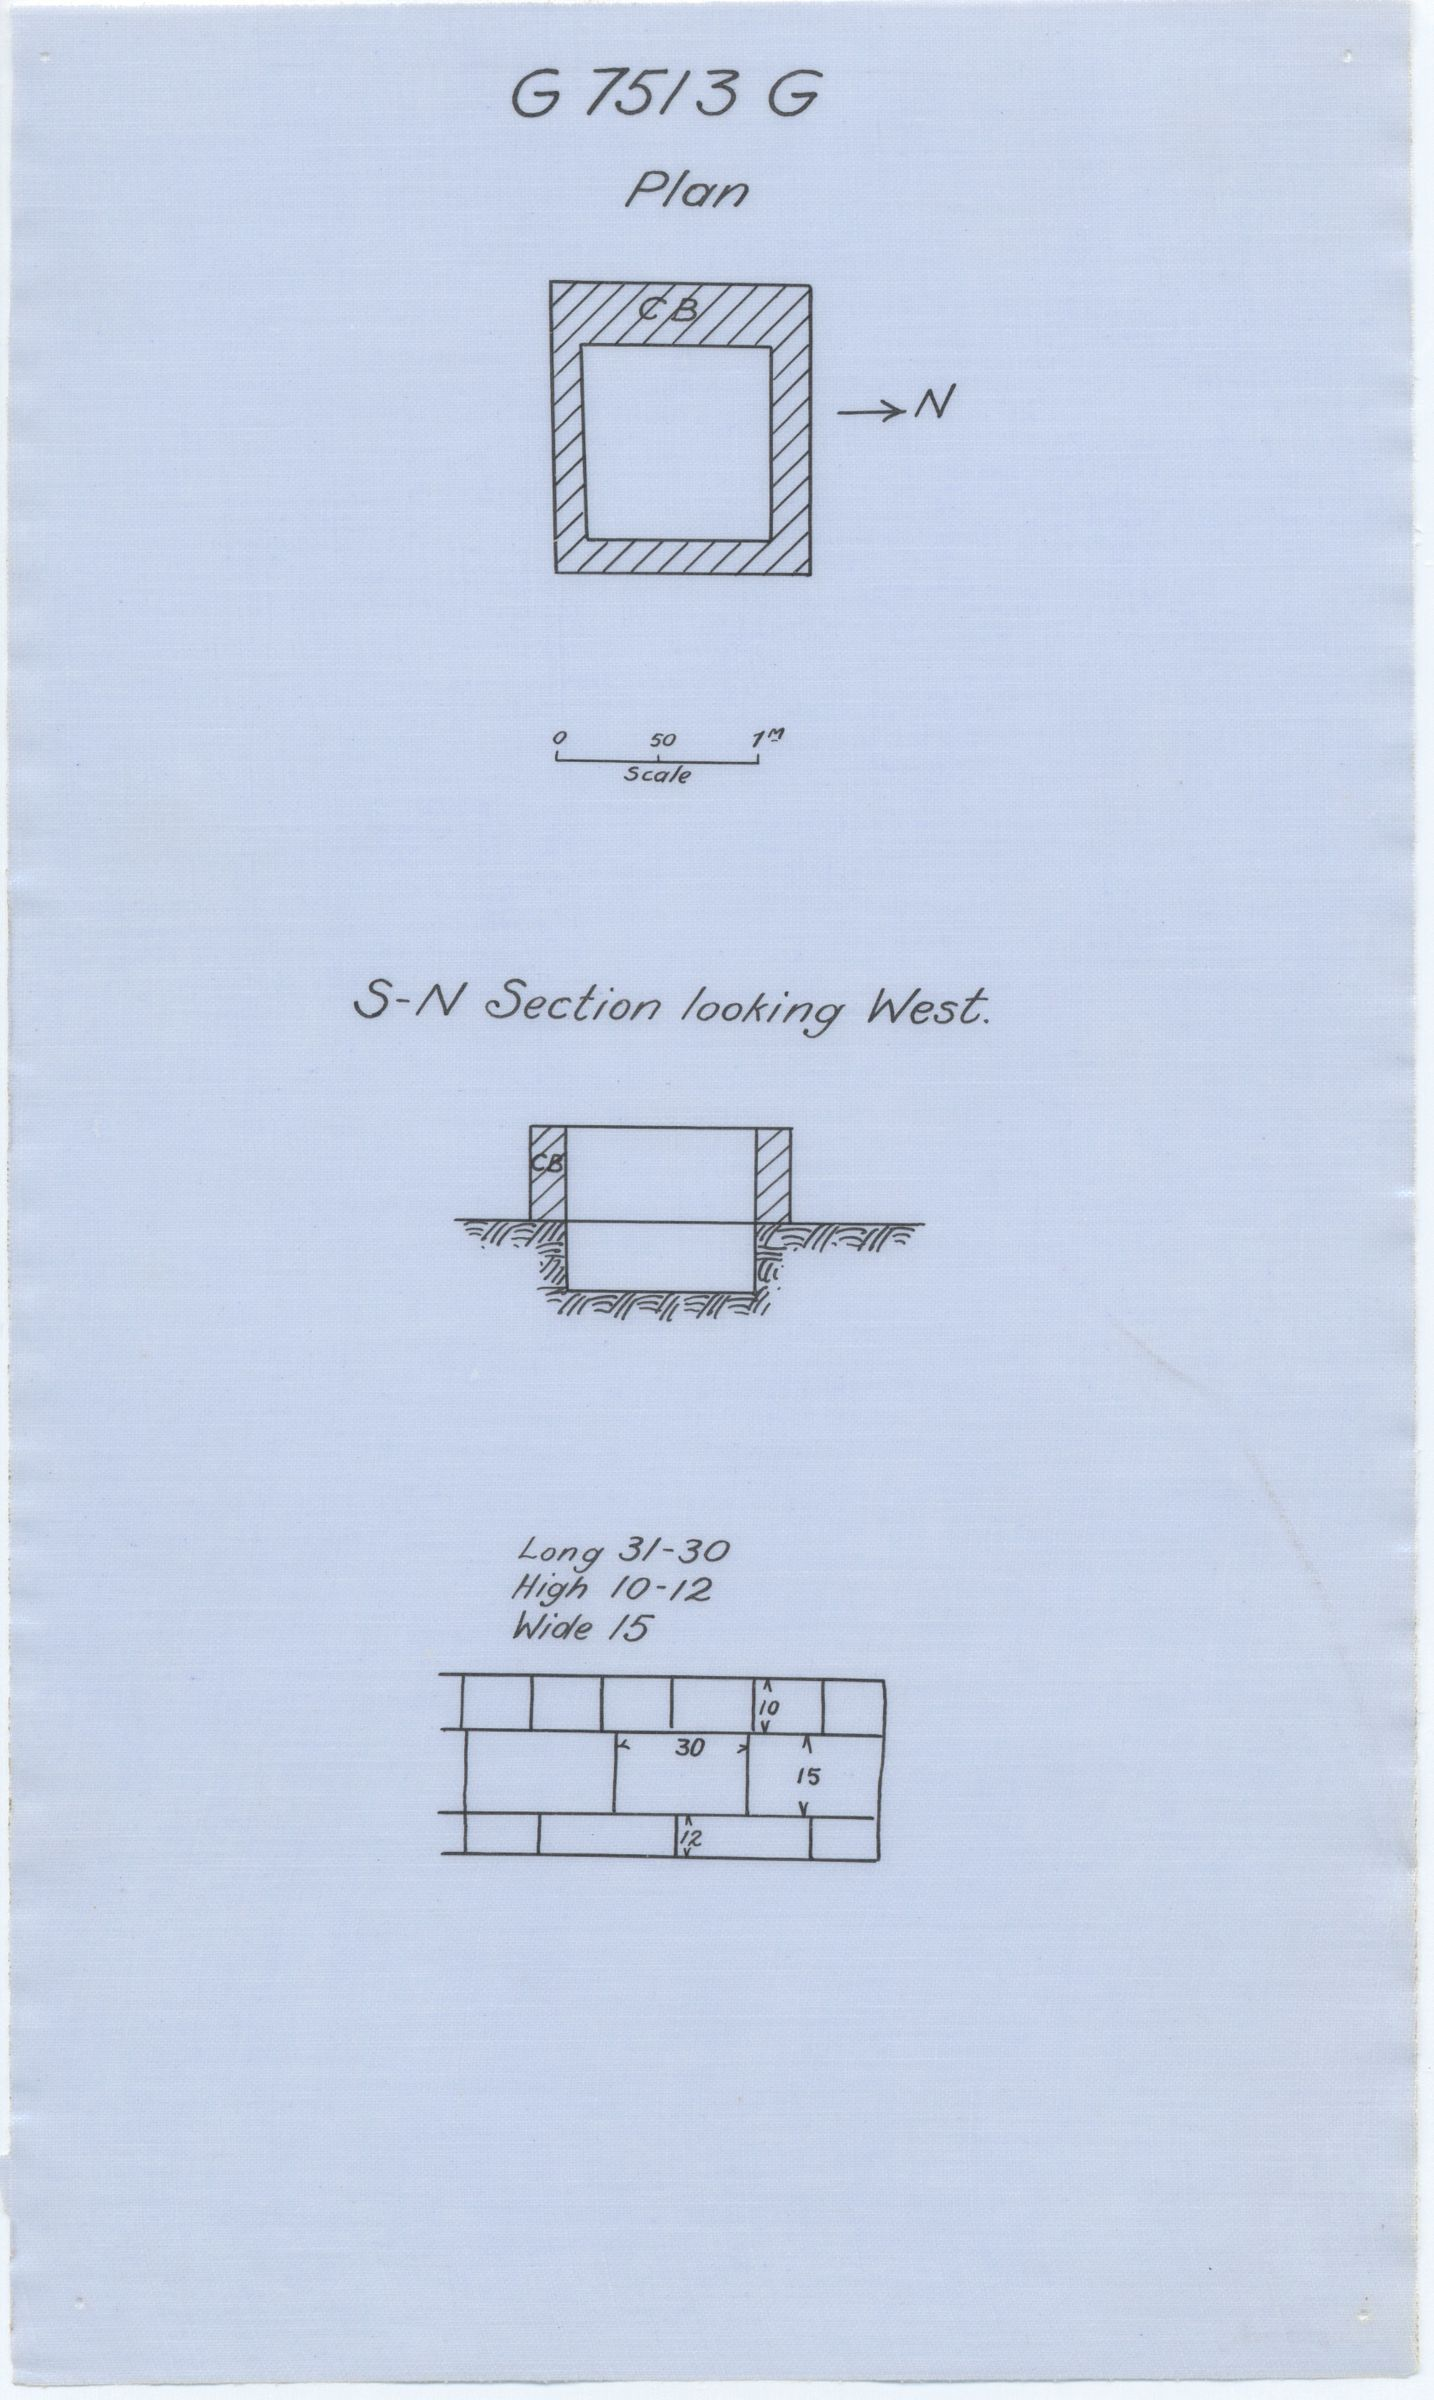 Maps and plans: G 7513, Shaft G